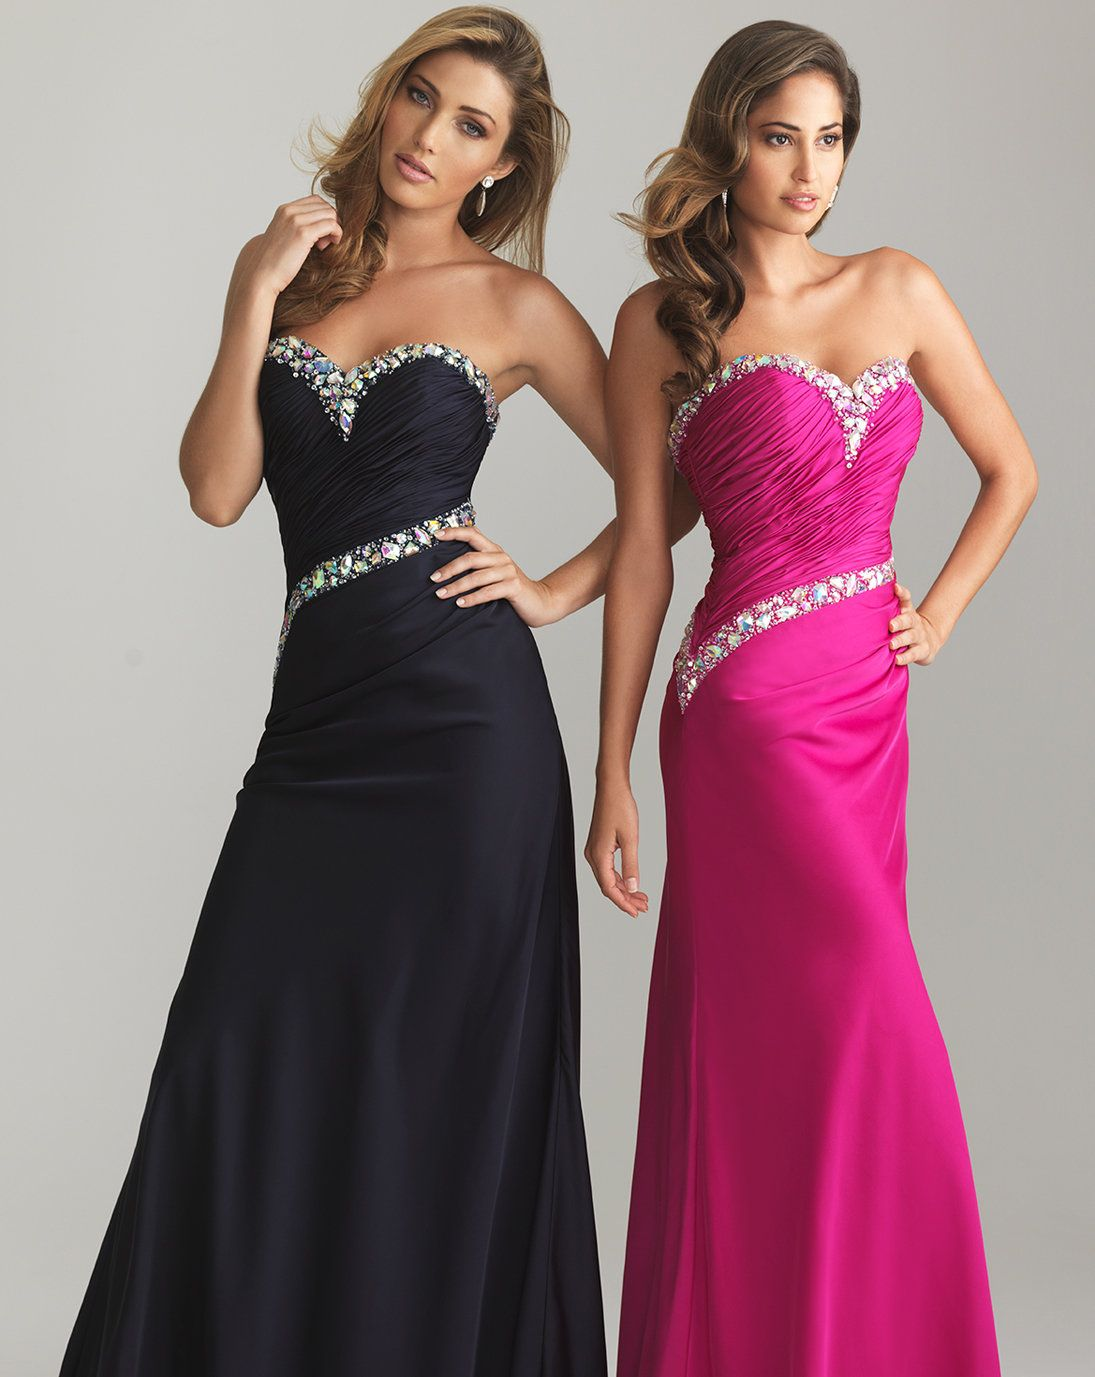 Pin by connie johnson on prom pinterest sweetheart prom dress